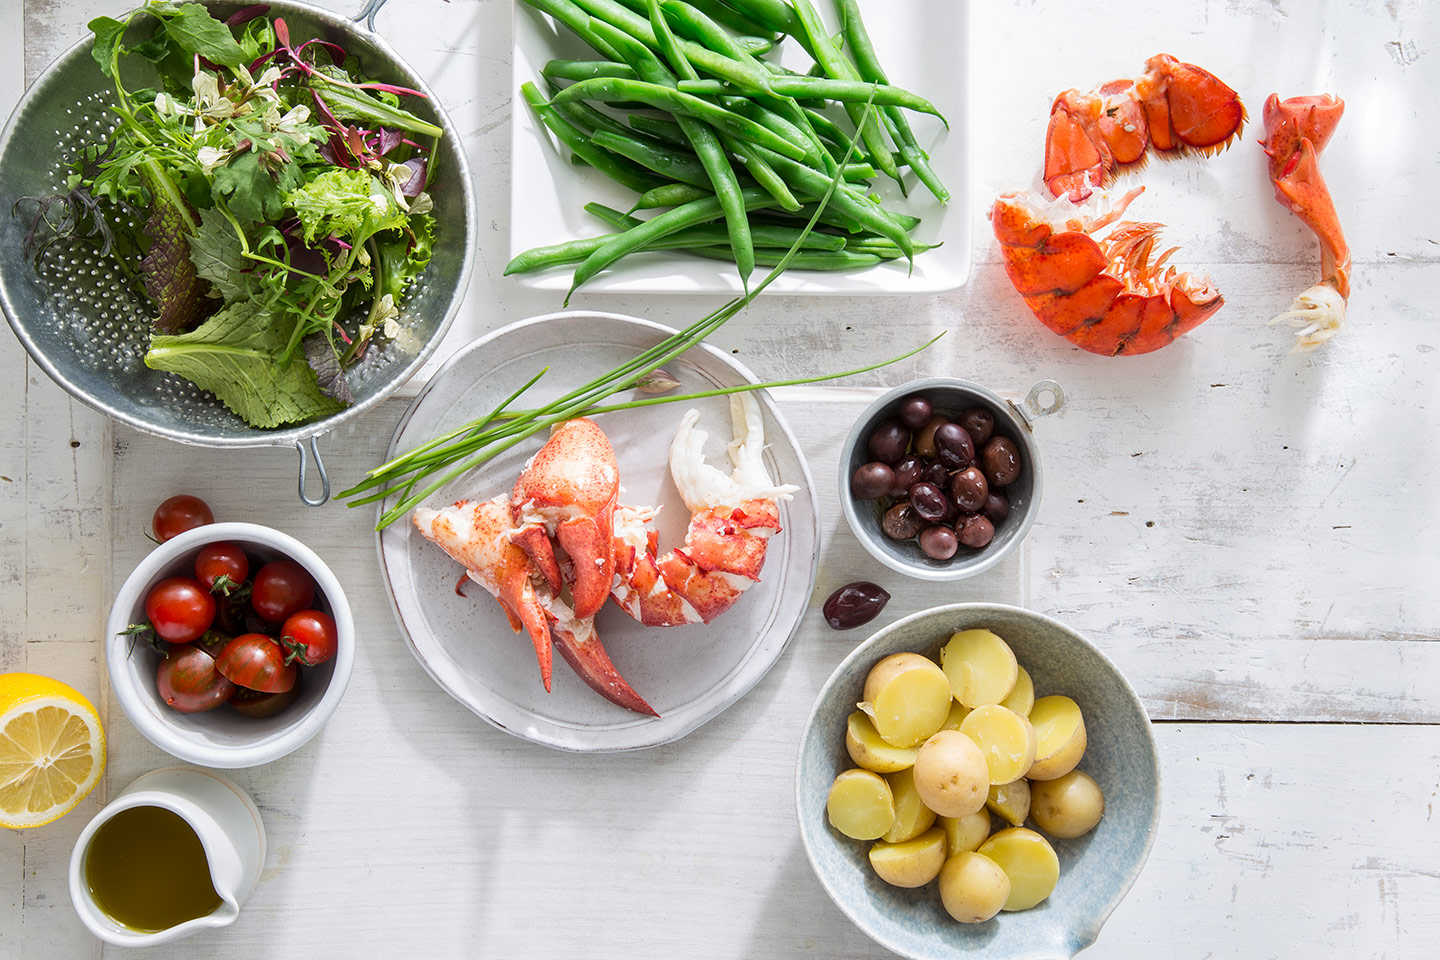 shelled lobster on a table with fresh salad ingredients